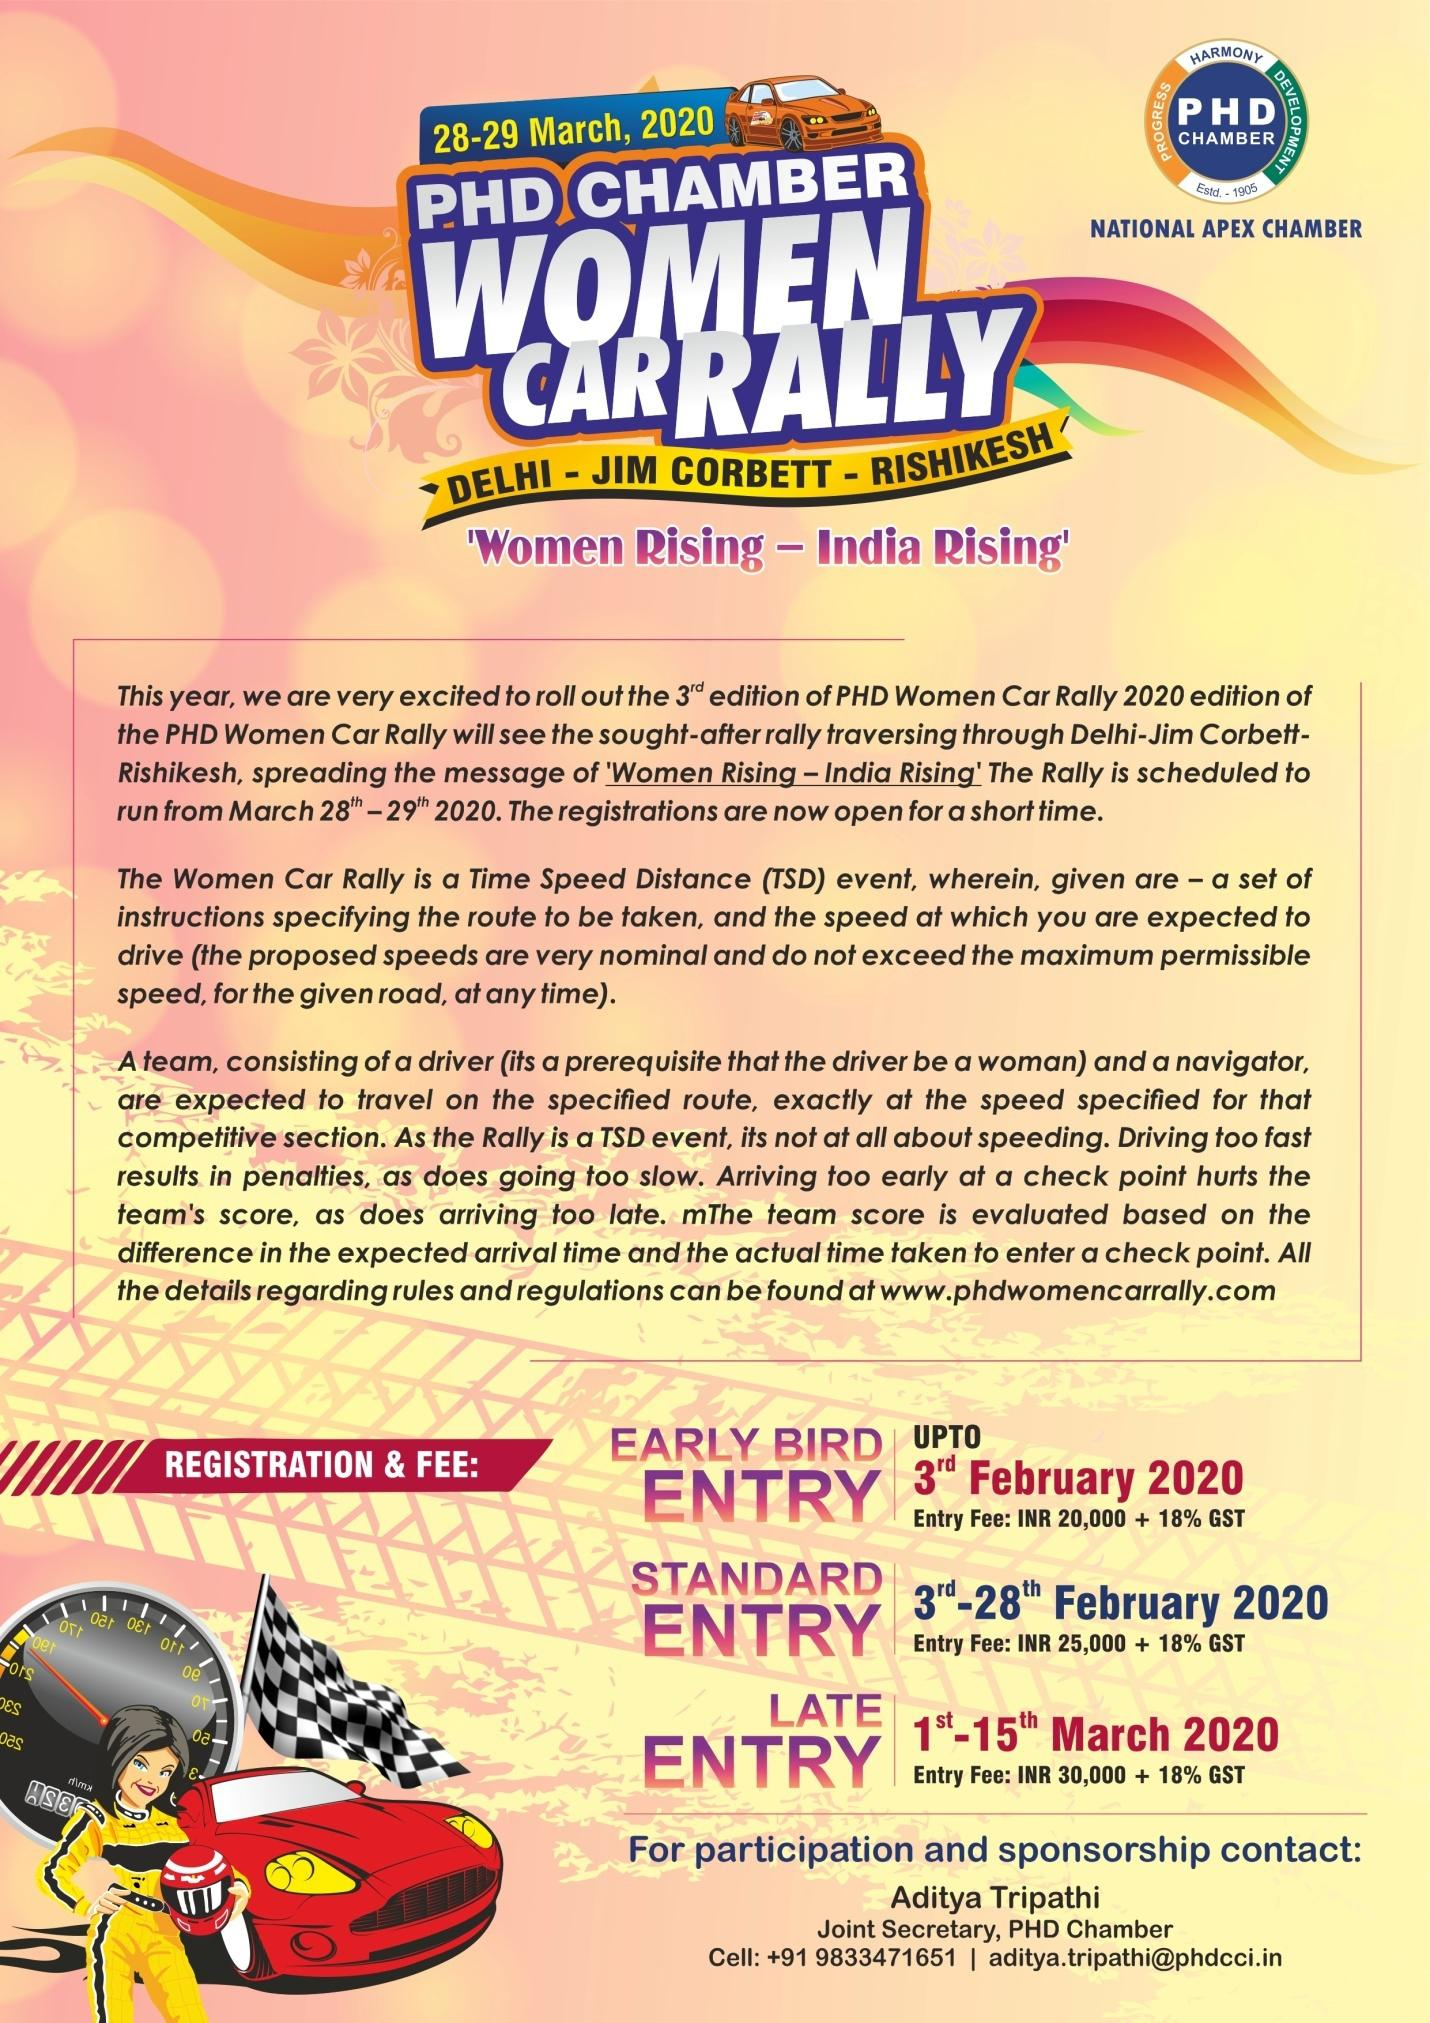 PHD Chamber Women car rally 2020